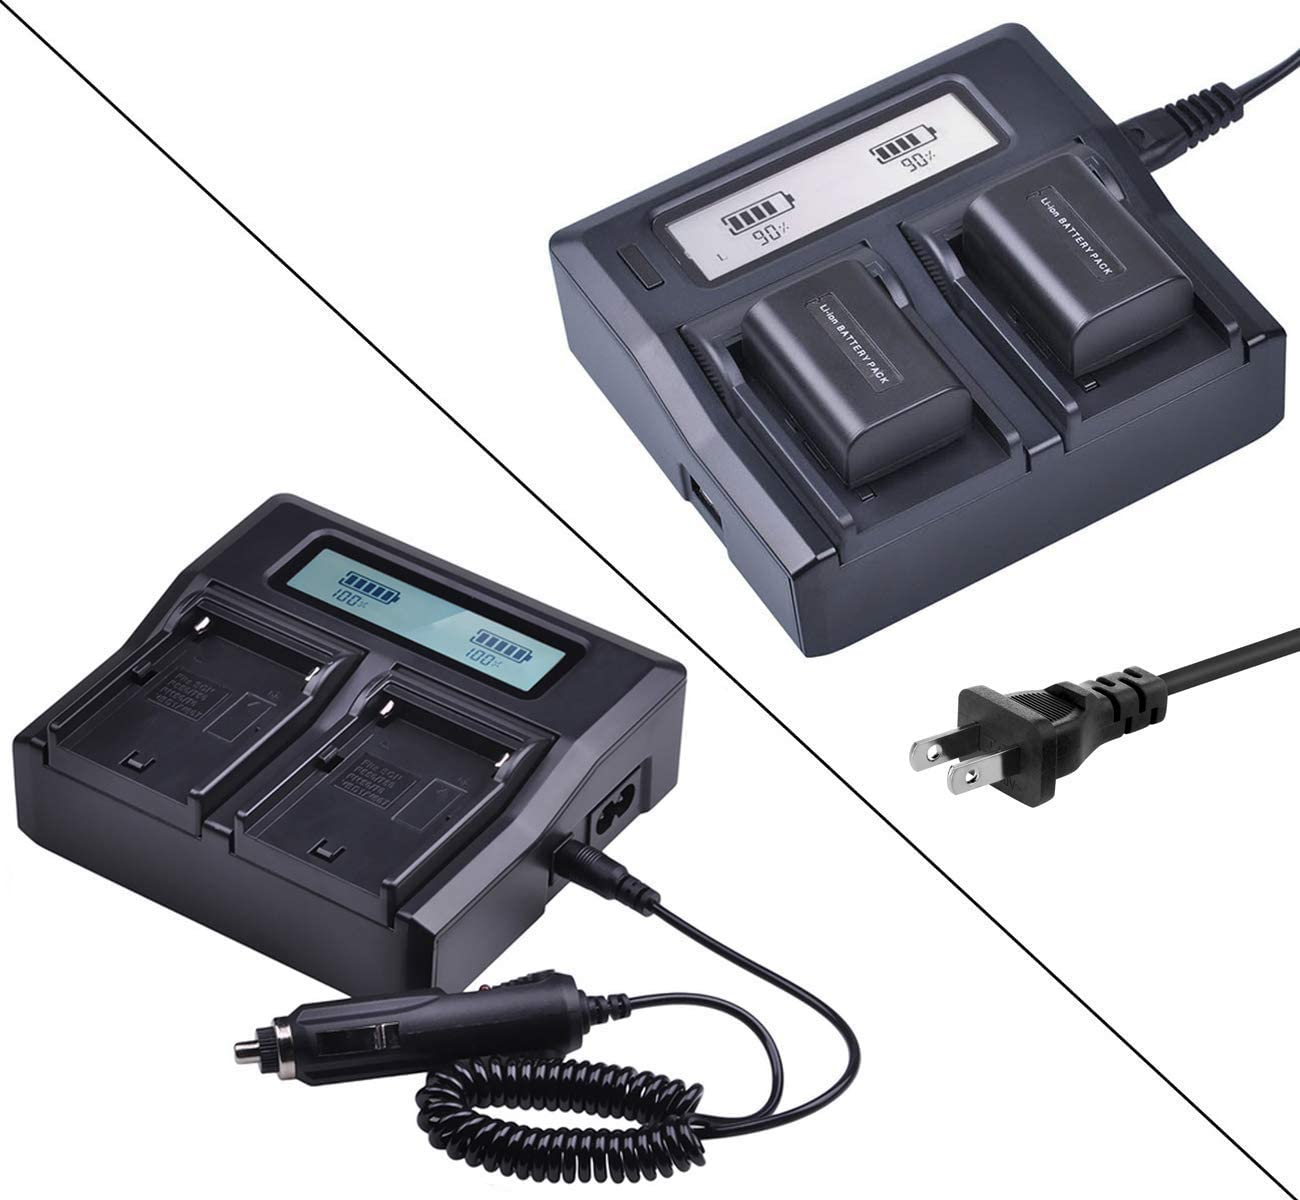 SDR-H20 LCD Dual Quick Battery Charger for Panasonic SDR-H18 SDR-H200 SDR-H280 Camcorder SDR-H250